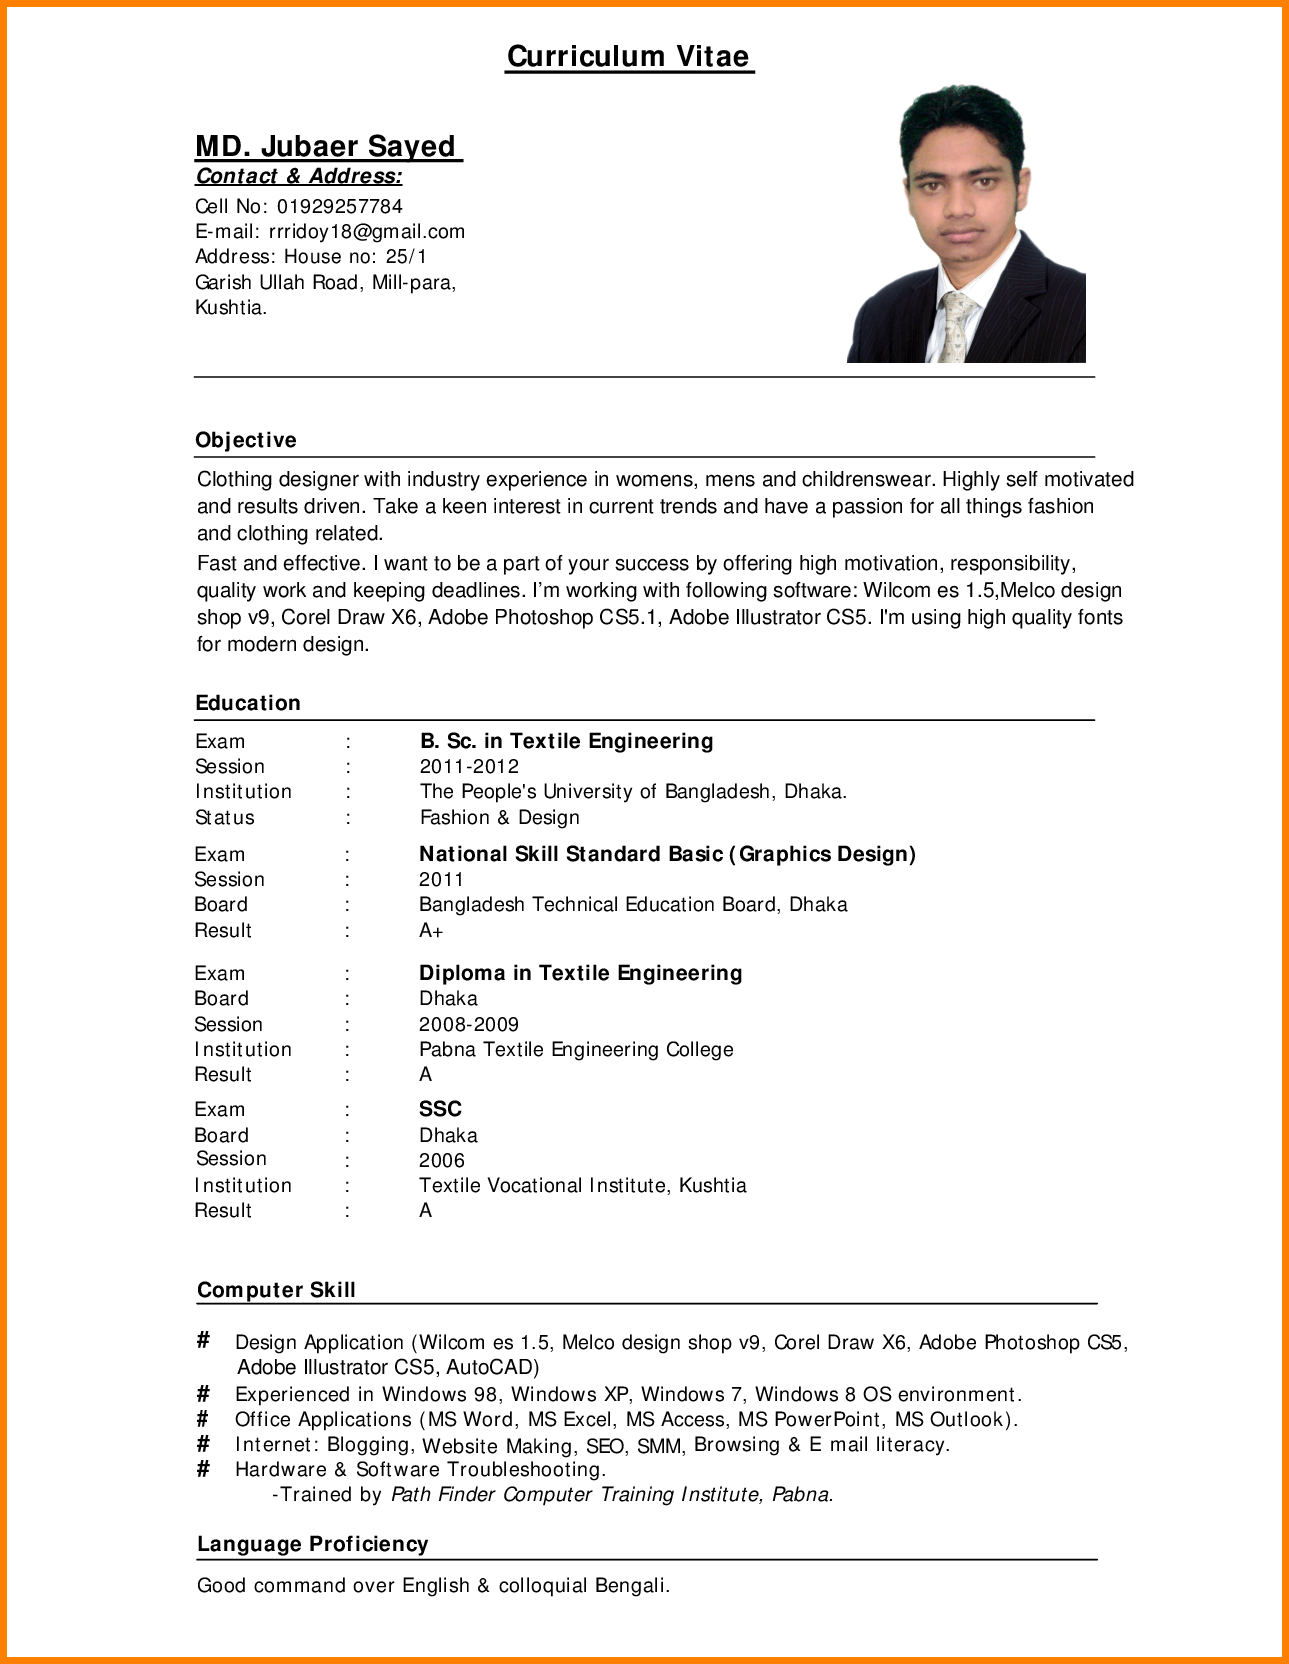 sample pdfputer skills and education for curriculum vitae resume format